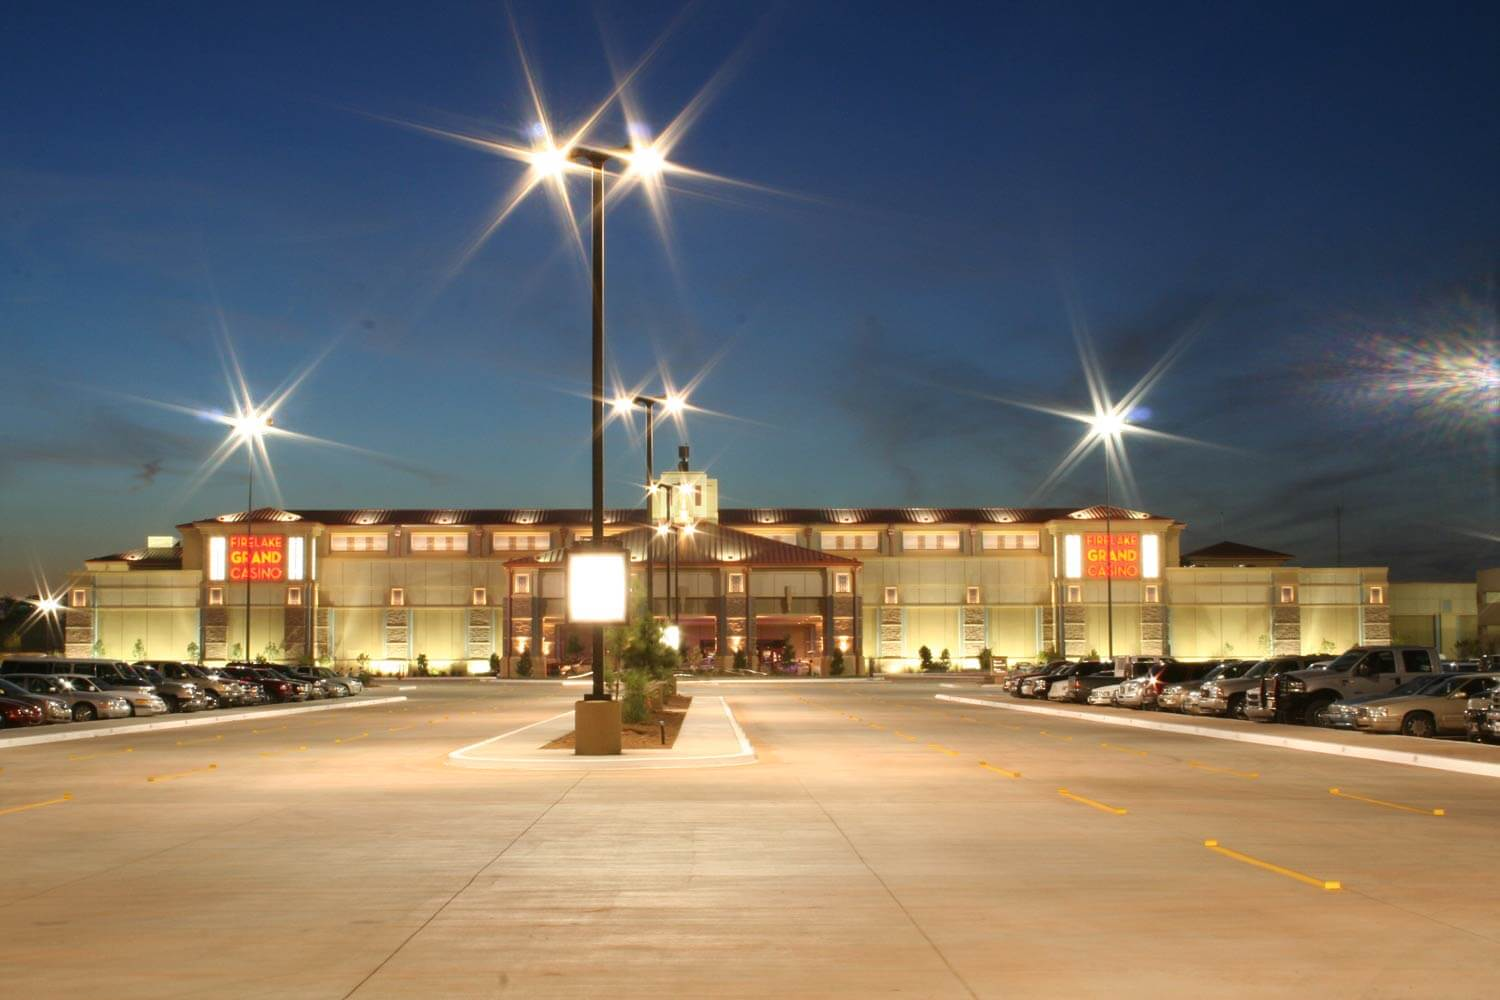 Nighttime Exterior at the Grand Casino Image